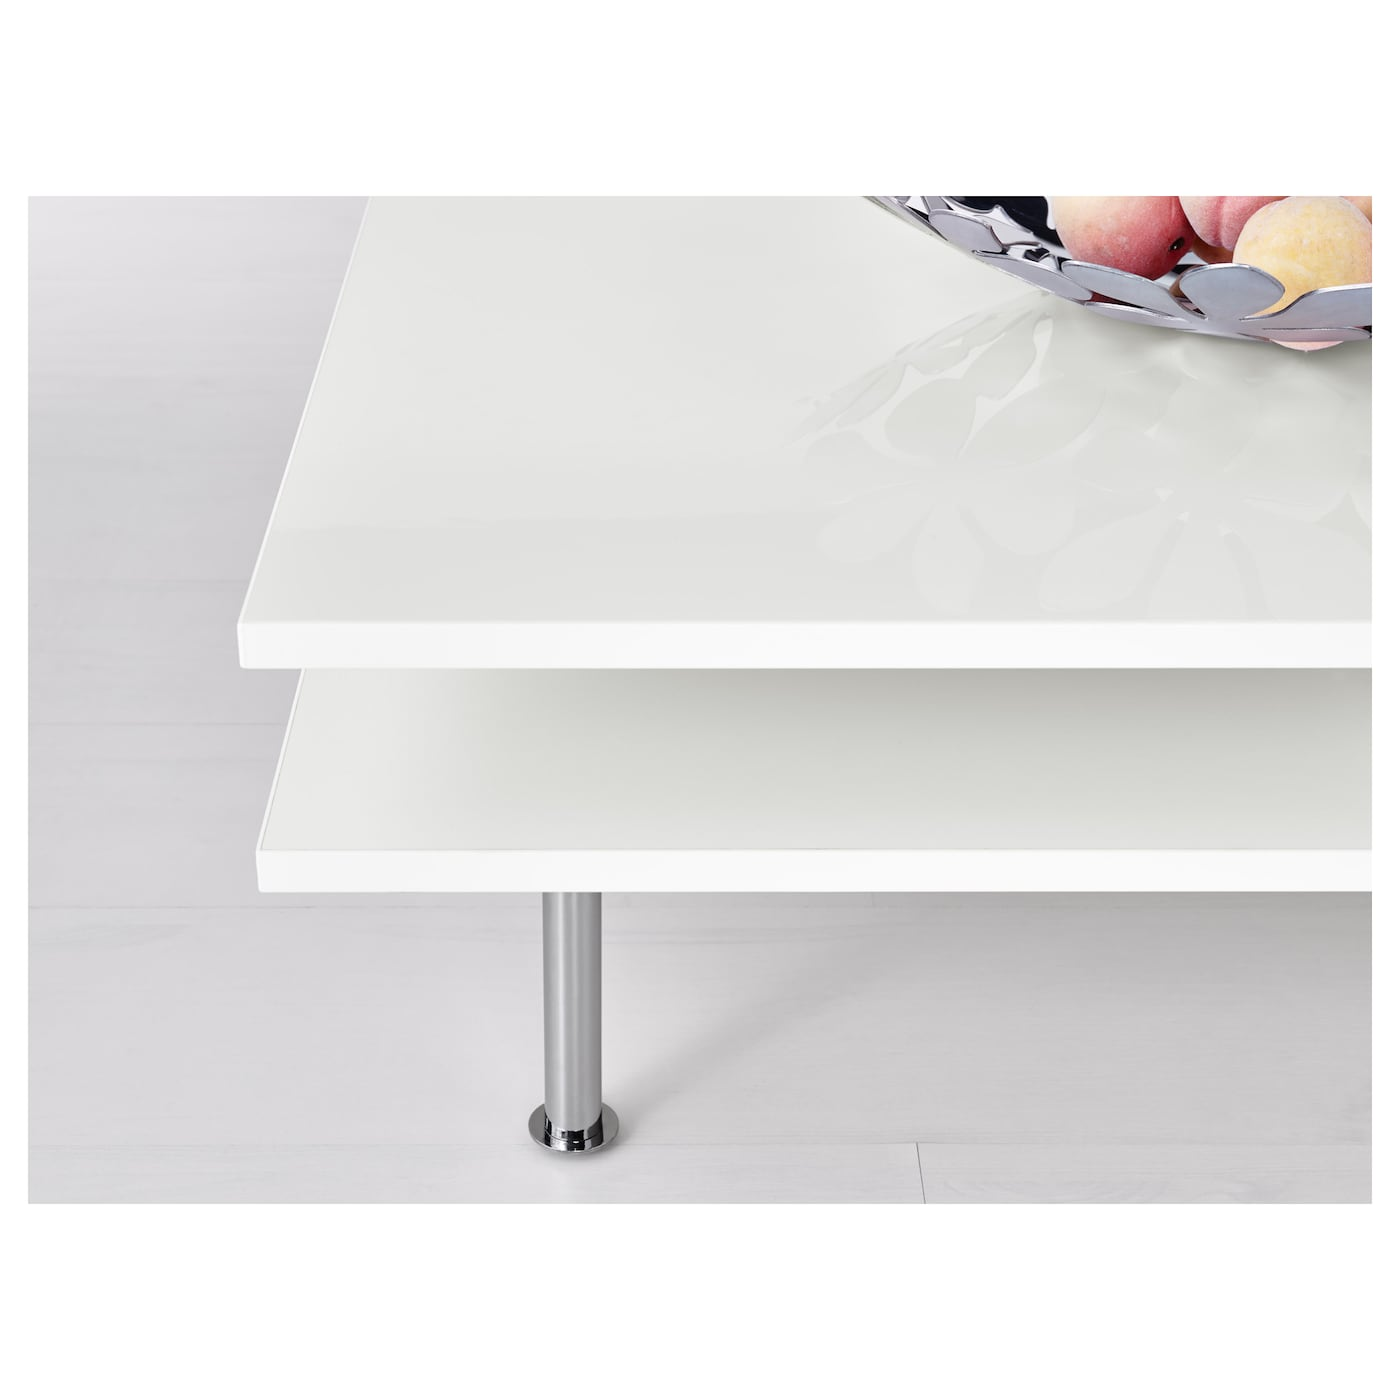 tofteryd table basse brillant blanc 95x95 cm ikea. Black Bedroom Furniture Sets. Home Design Ideas